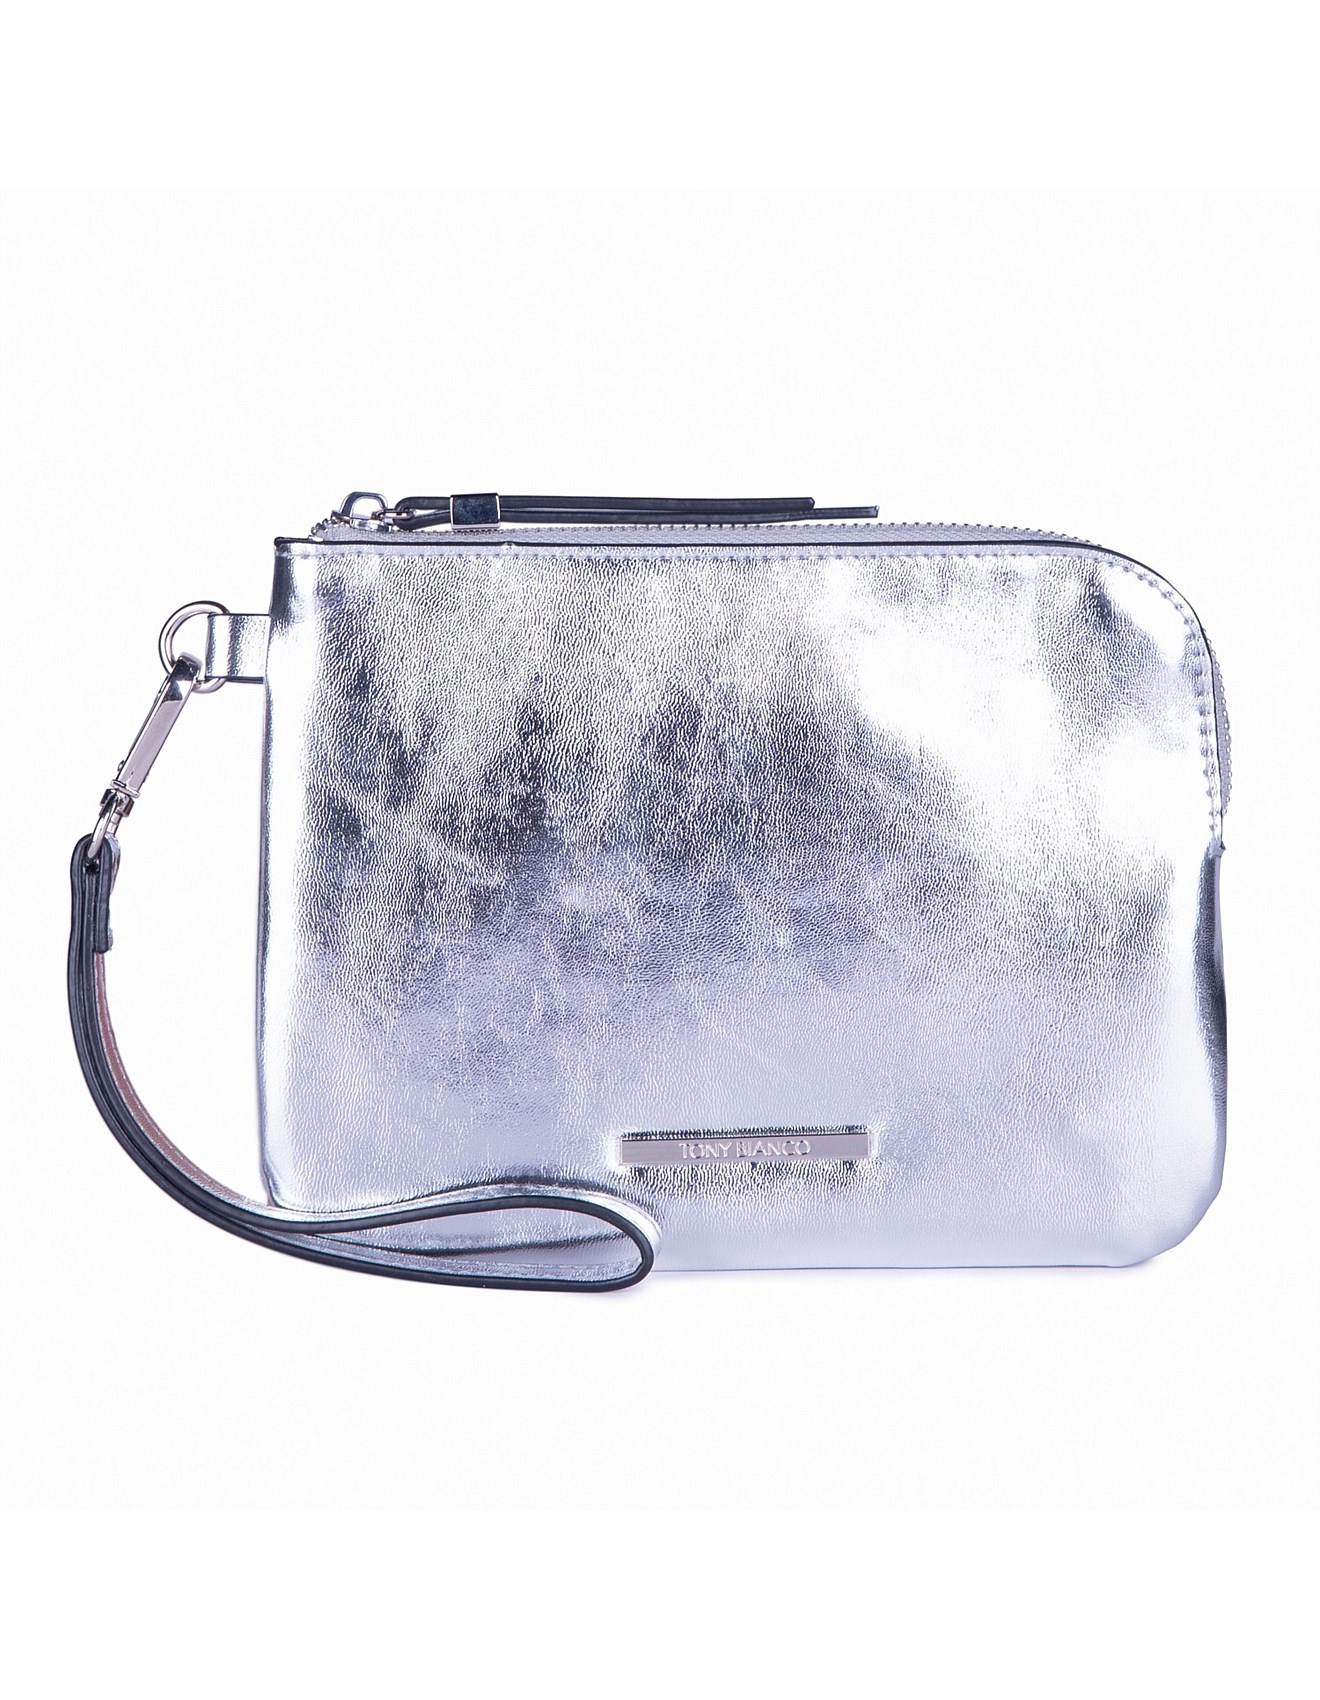 DELSON POUCH WITH WRISTLET 7a59f6d47a